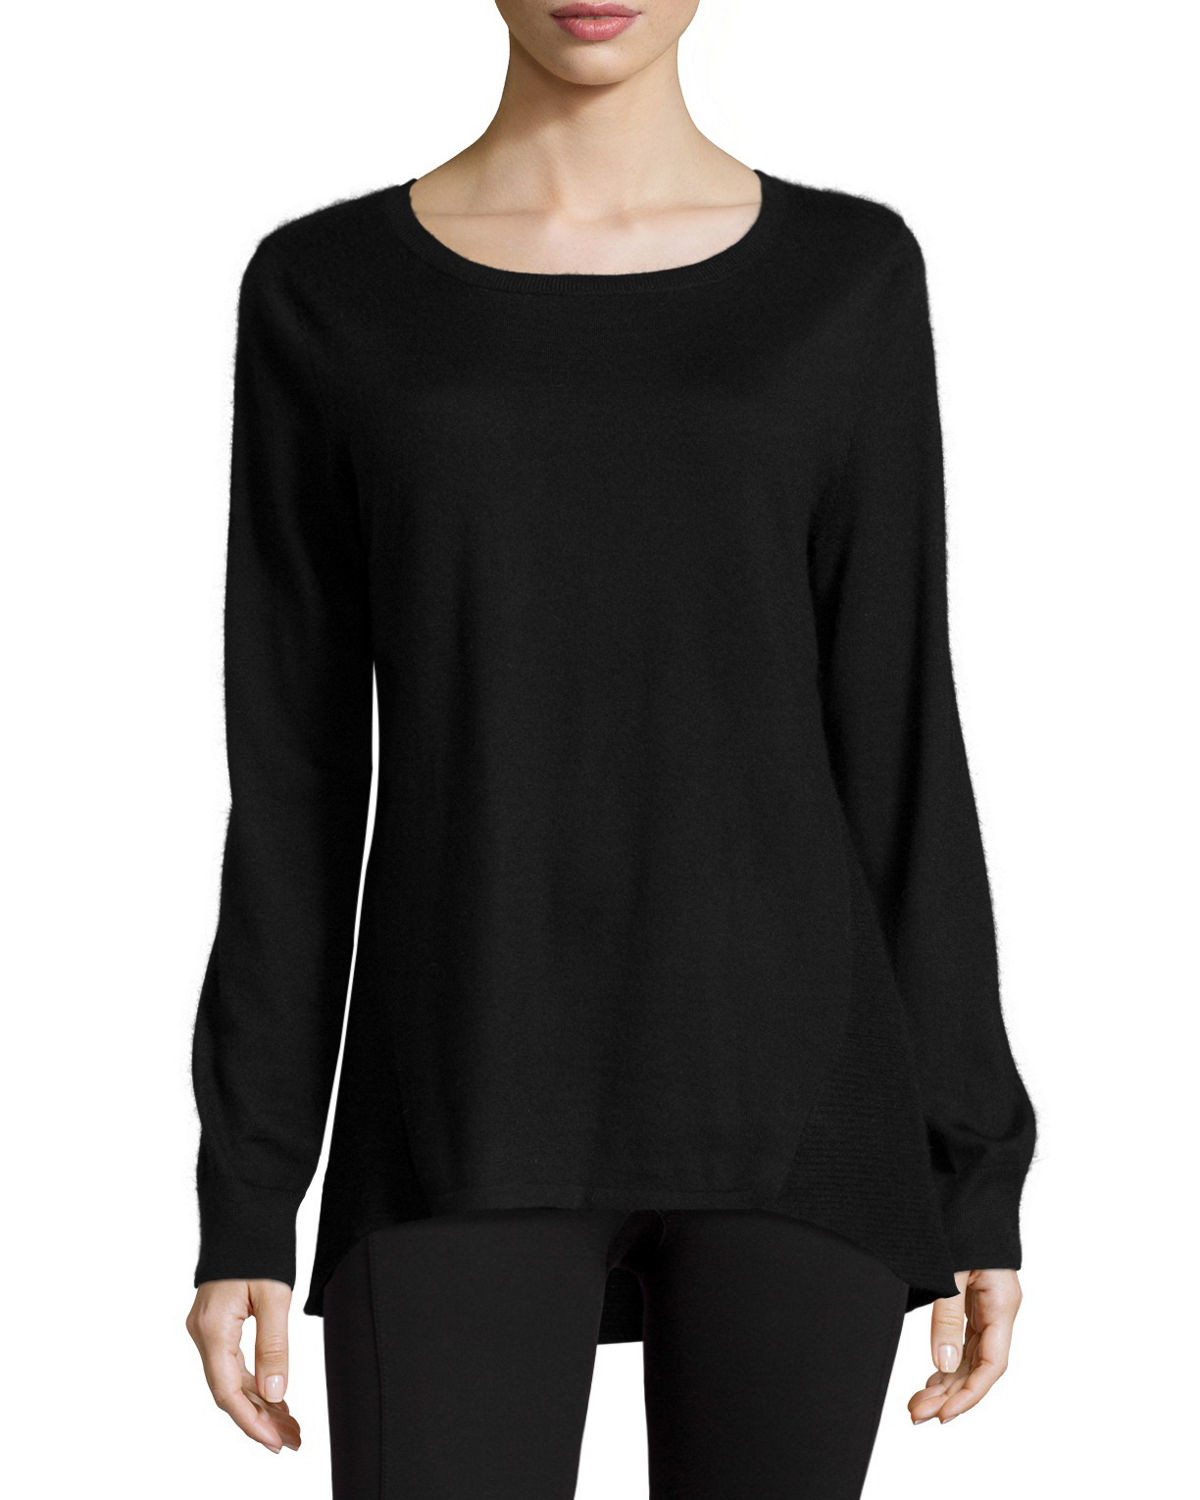 neiman marcus jewel neck cashmere pullover in black lyst. Black Bedroom Furniture Sets. Home Design Ideas